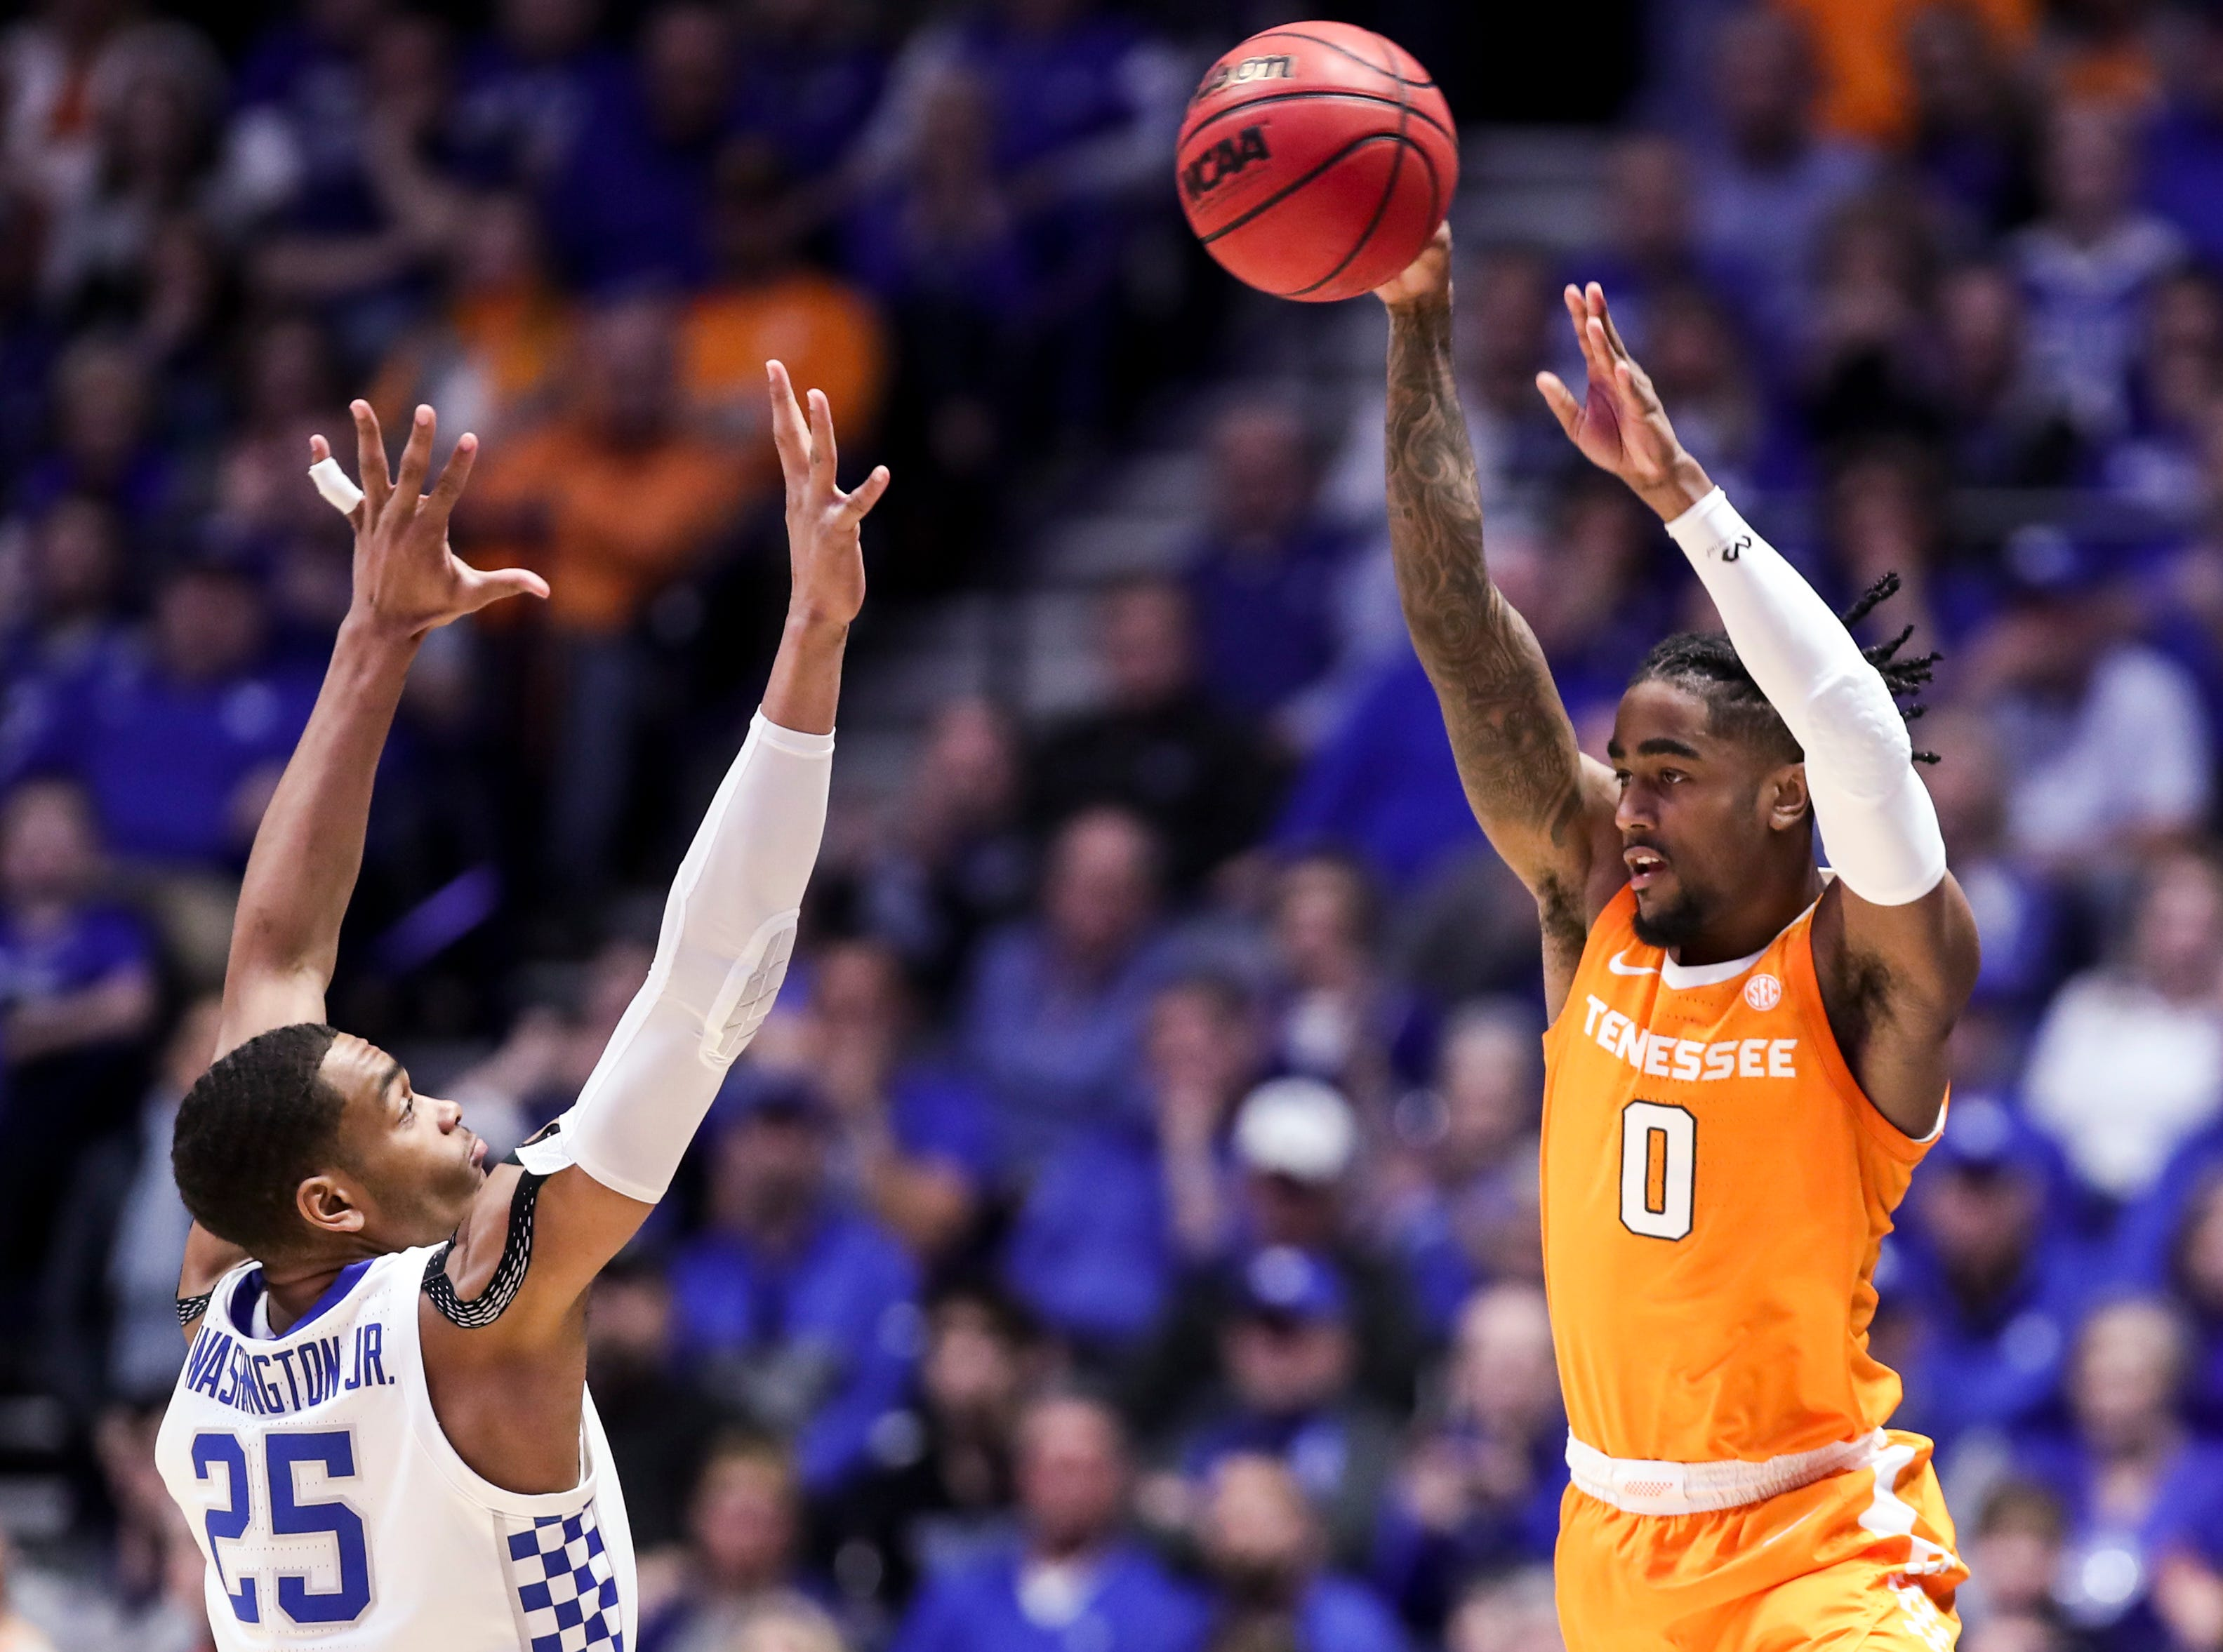 Tennessee guard Jordan Bone (0) shoots over Kentucky forward PJ Washington (25) during the second half of the SEC Men's Basketball Tournament semifinal game at Bridgestone Arena in Nashville, Tenn., Saturday, March 16, 2019.